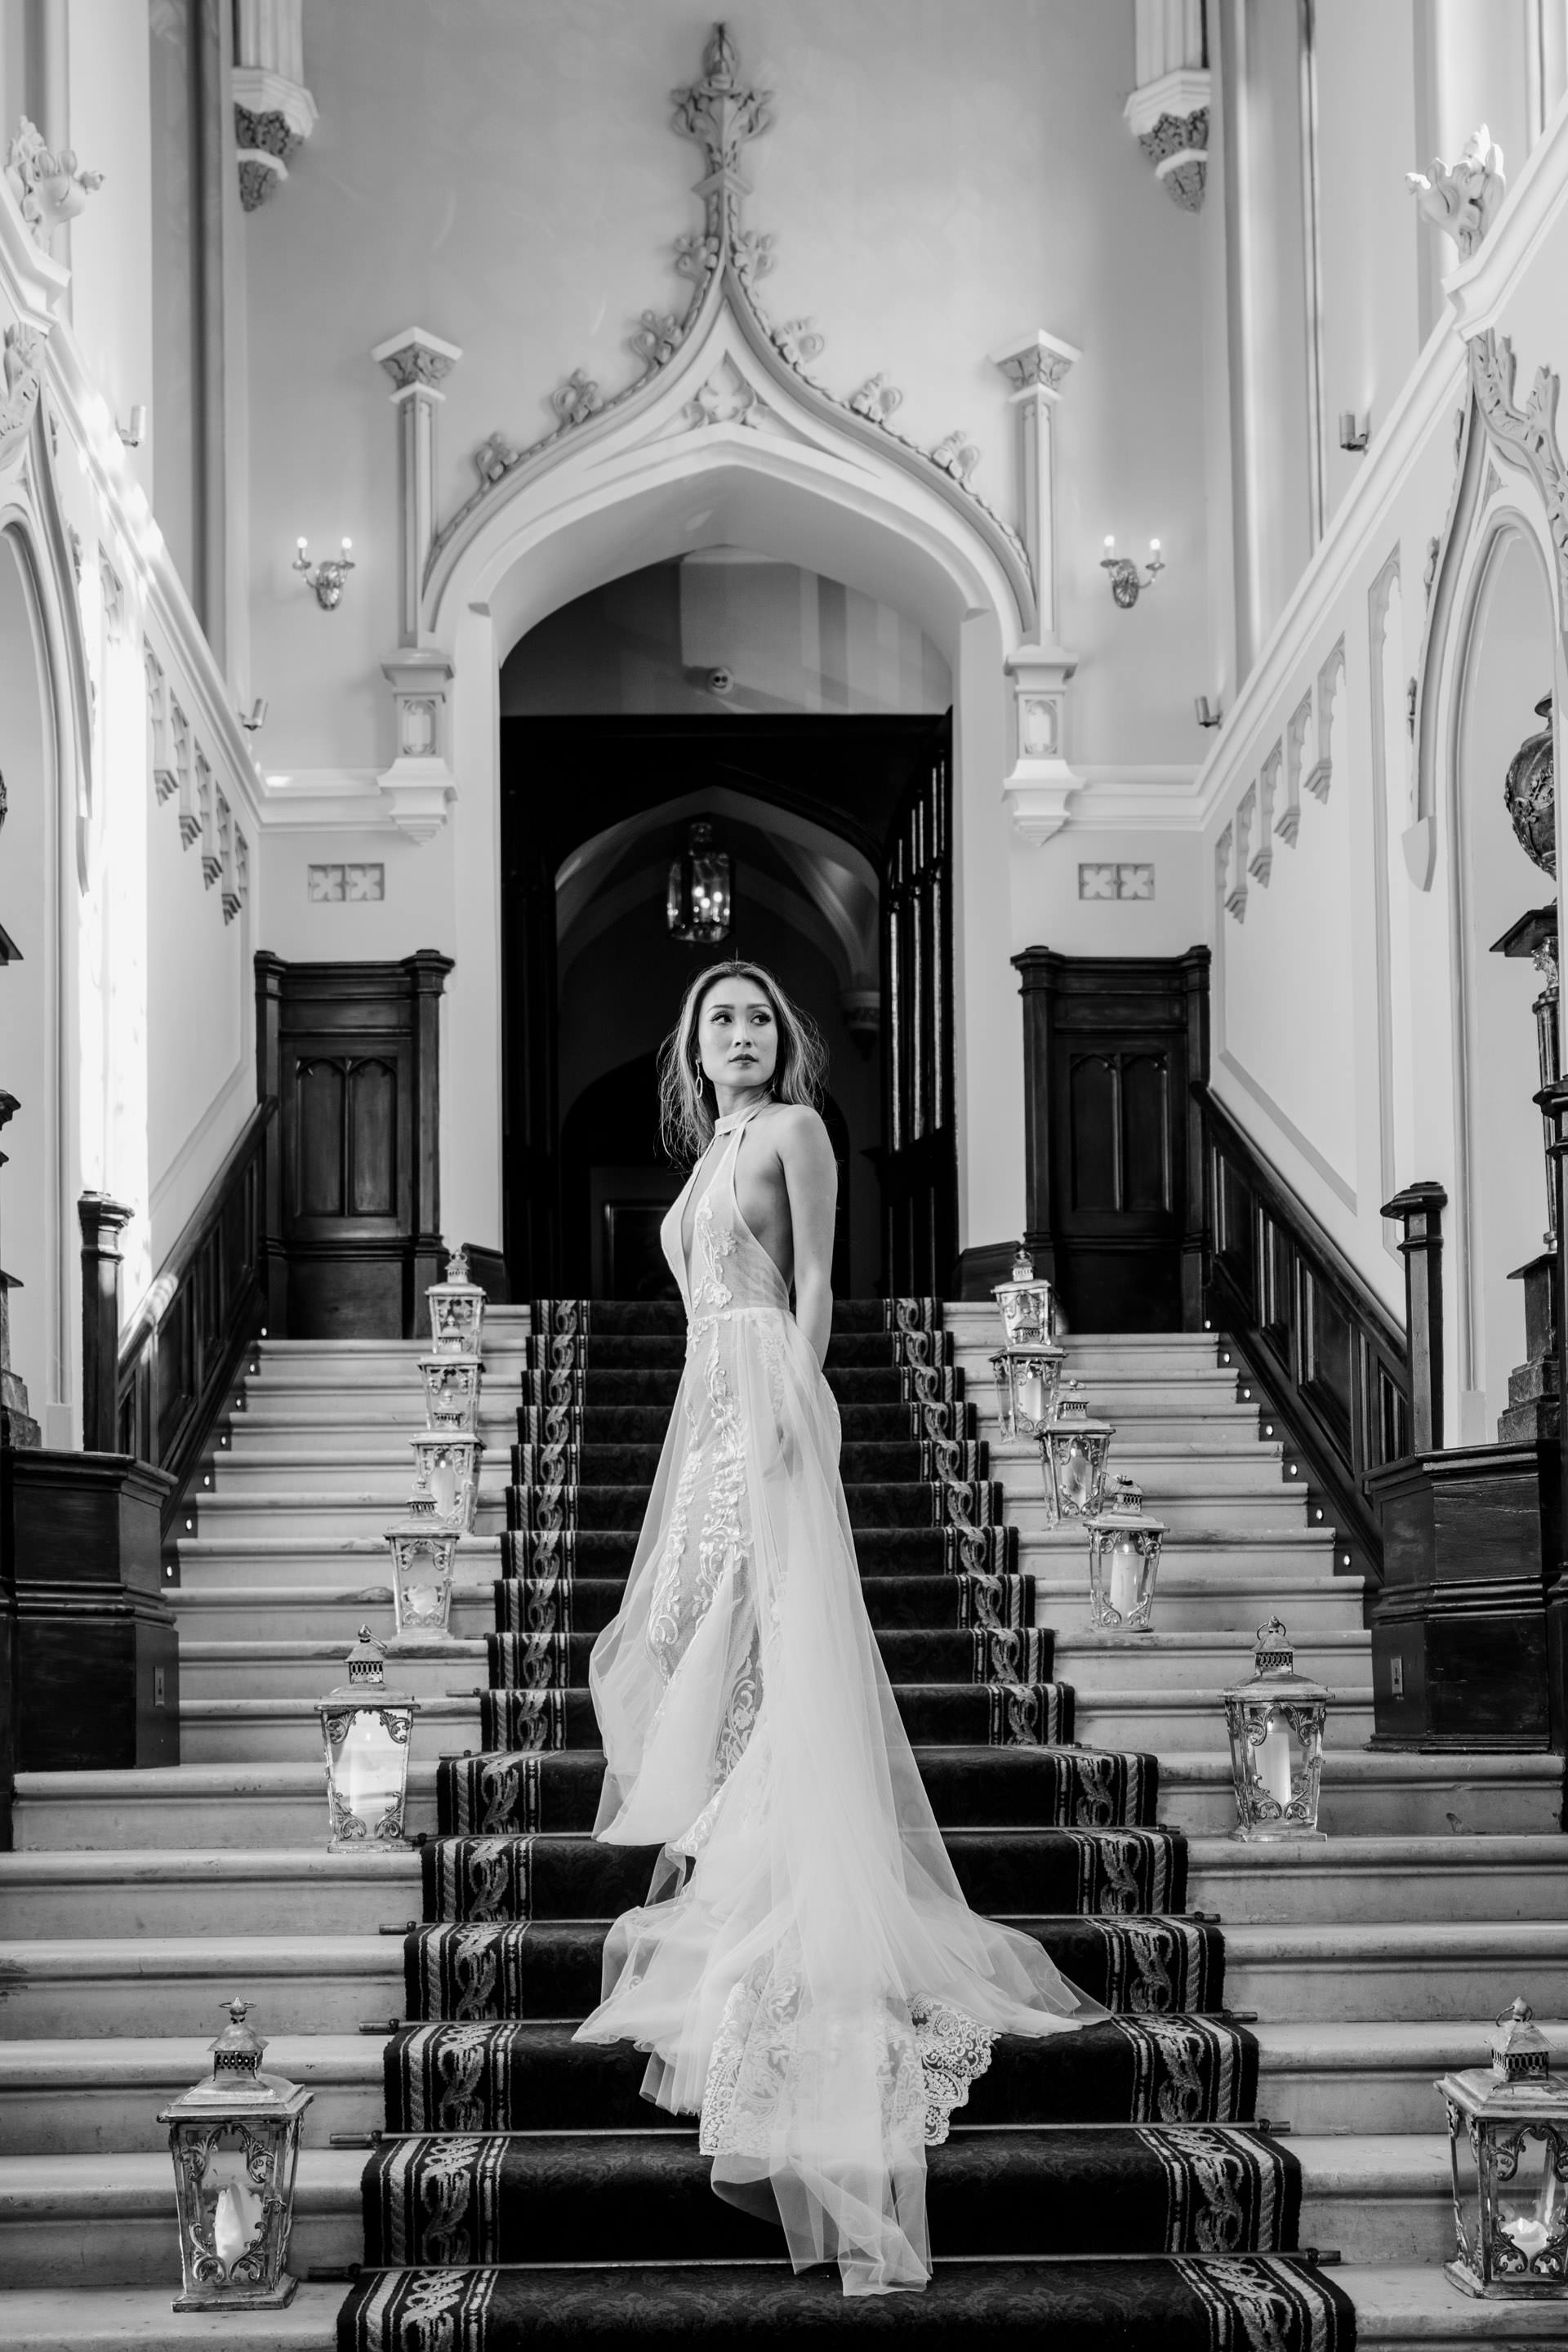 d&c_markree_castle_sligo_wedding_photographer_livia_figueiredo_17.jpg